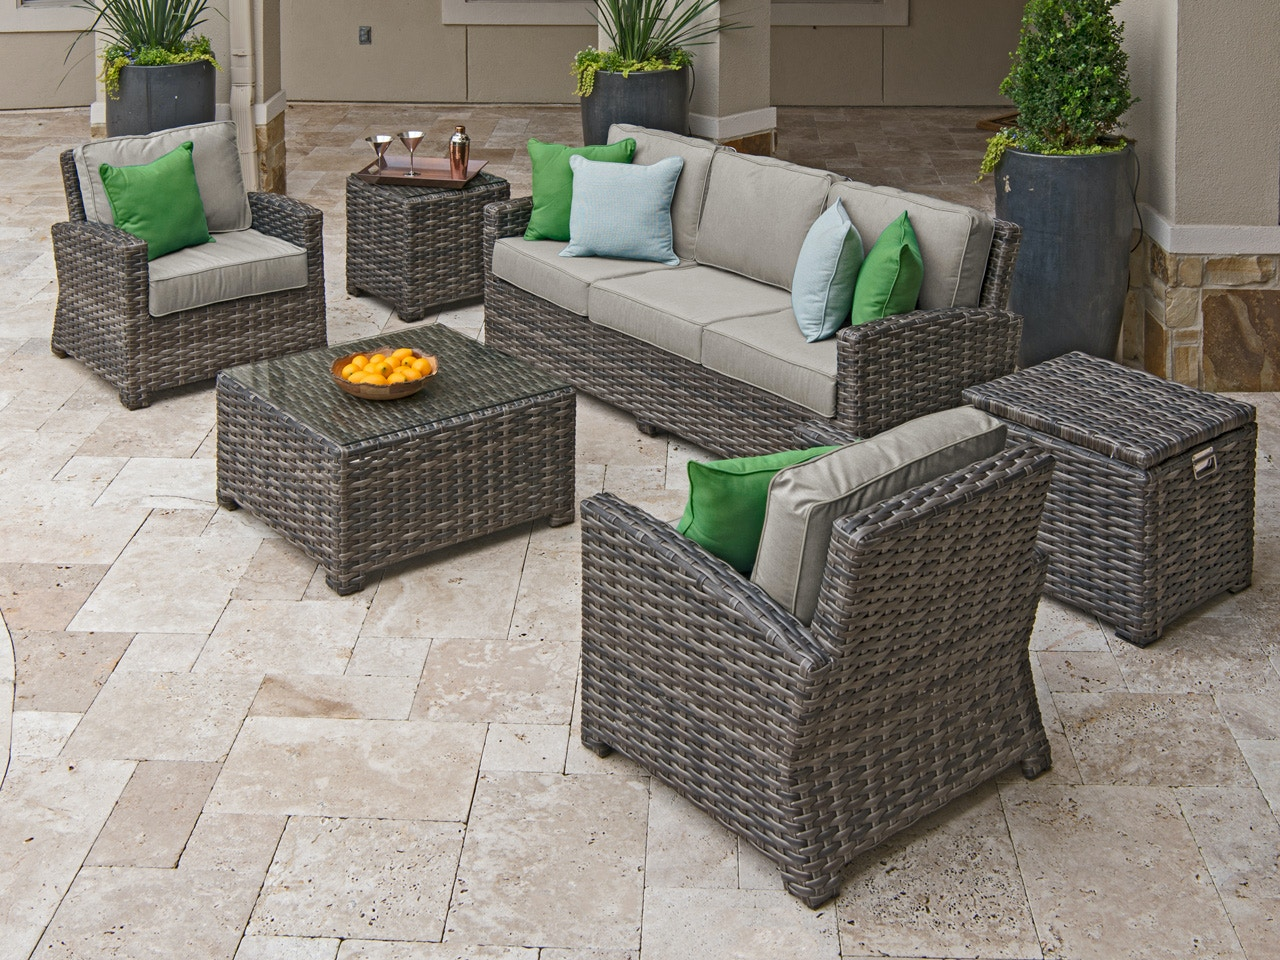 Contempo Husk Aluminum And Outdoor Wicker 4 Pc. Cushion Sofa Group With A  32 In